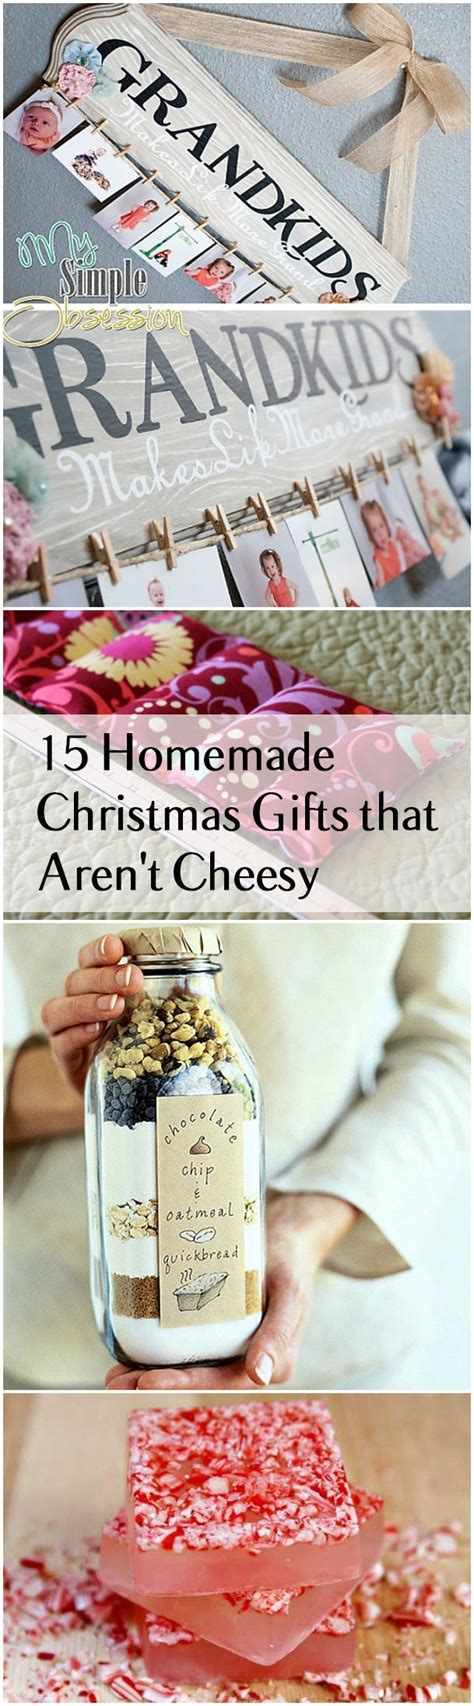 diy thoughtful gifts diy gifts gifts and ideas that are thoughtful inexpensive and easy